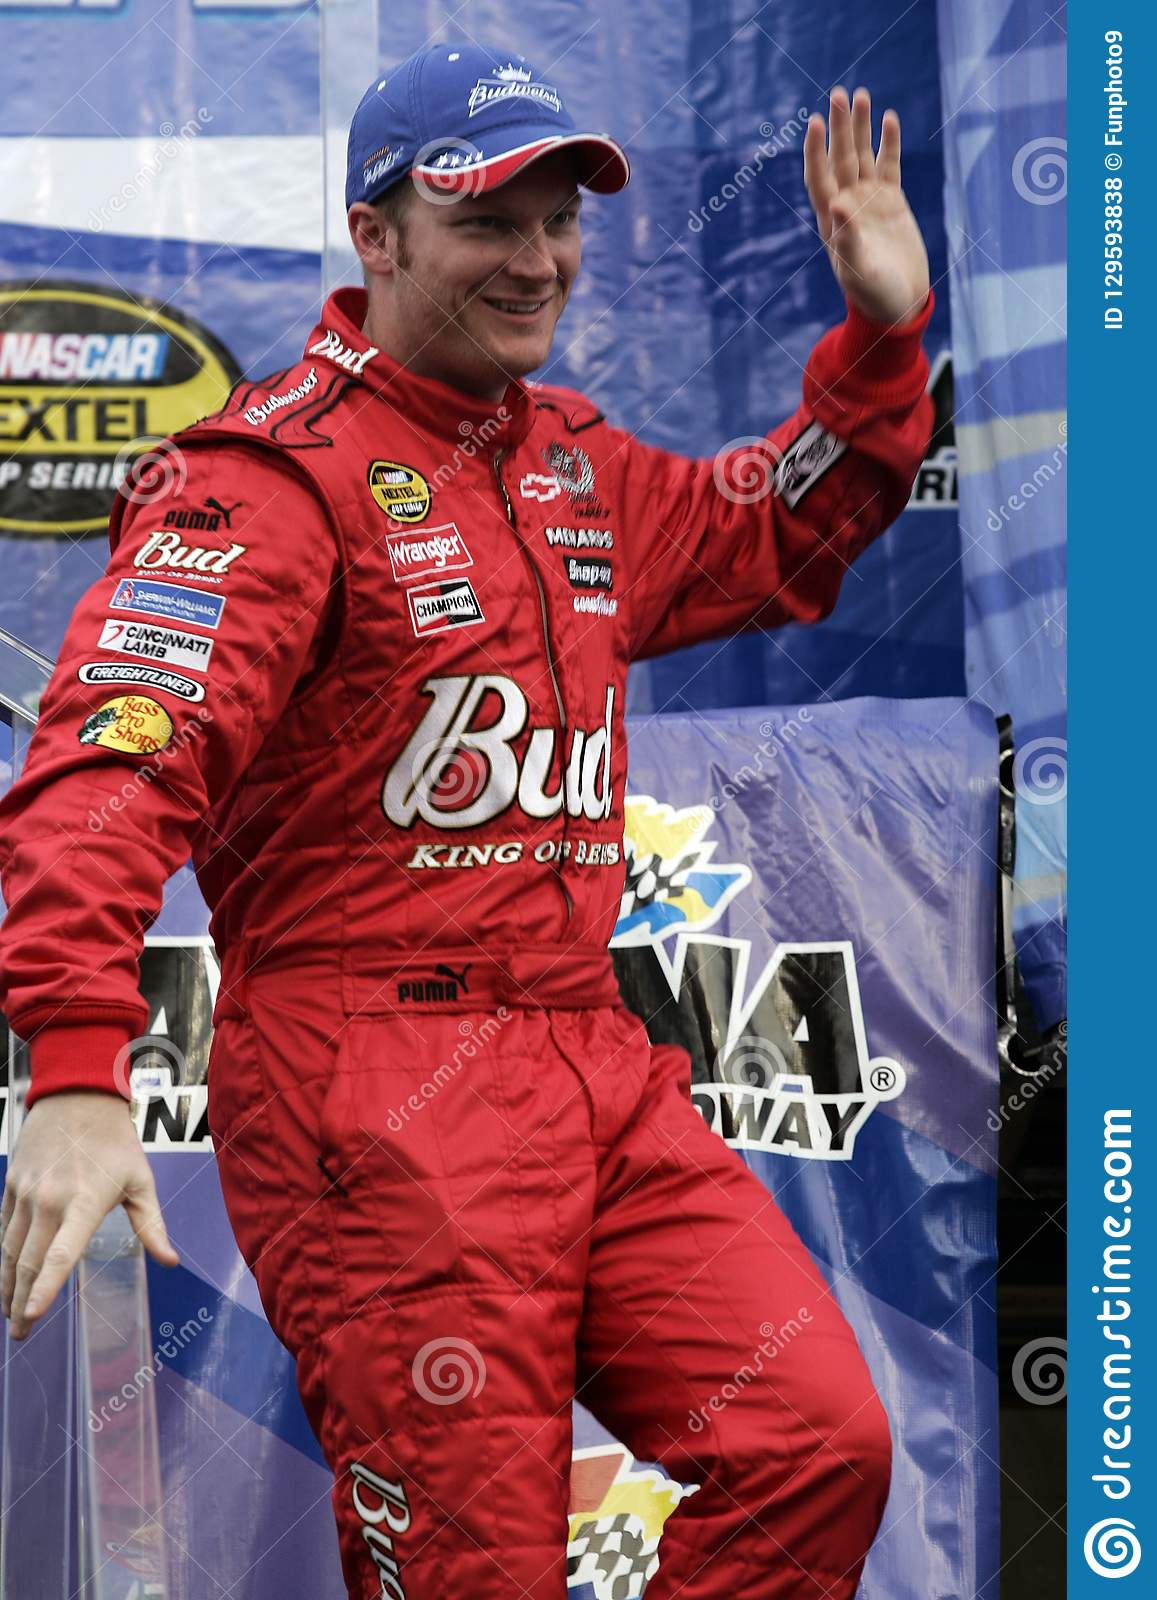 Dale Earnhardt Jr Attends Drivers Introduction Prior To The Start Of NASCAR Nextel Cup Pepsi 400 At Daytona International Speedway In Beach